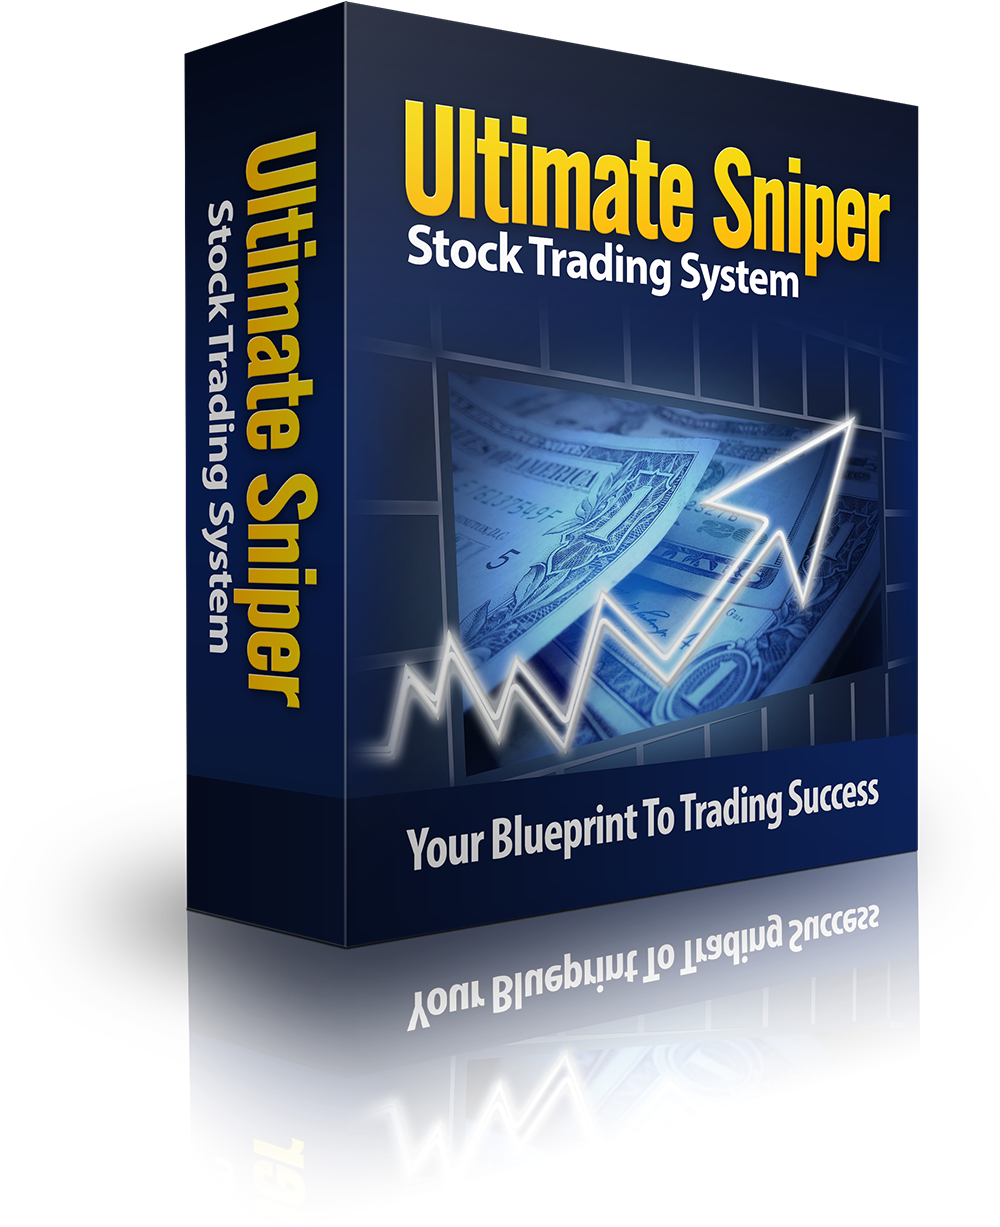 Ultimate trading system